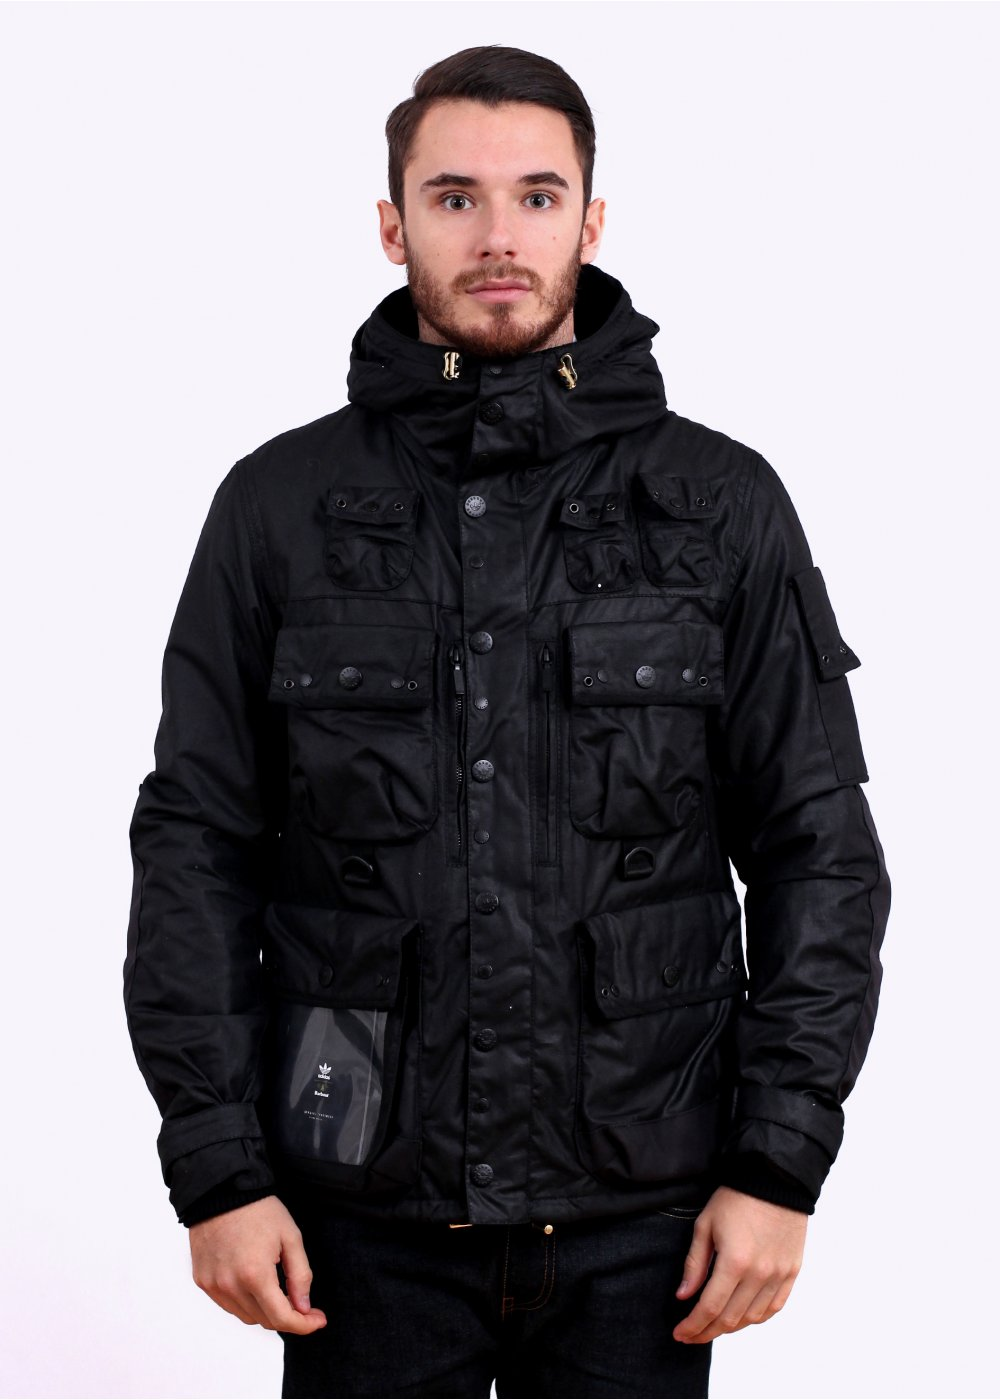 wholesale dealer 4a0fa d17d0 adidas Originals x Barbour Baradi Jacket - Black